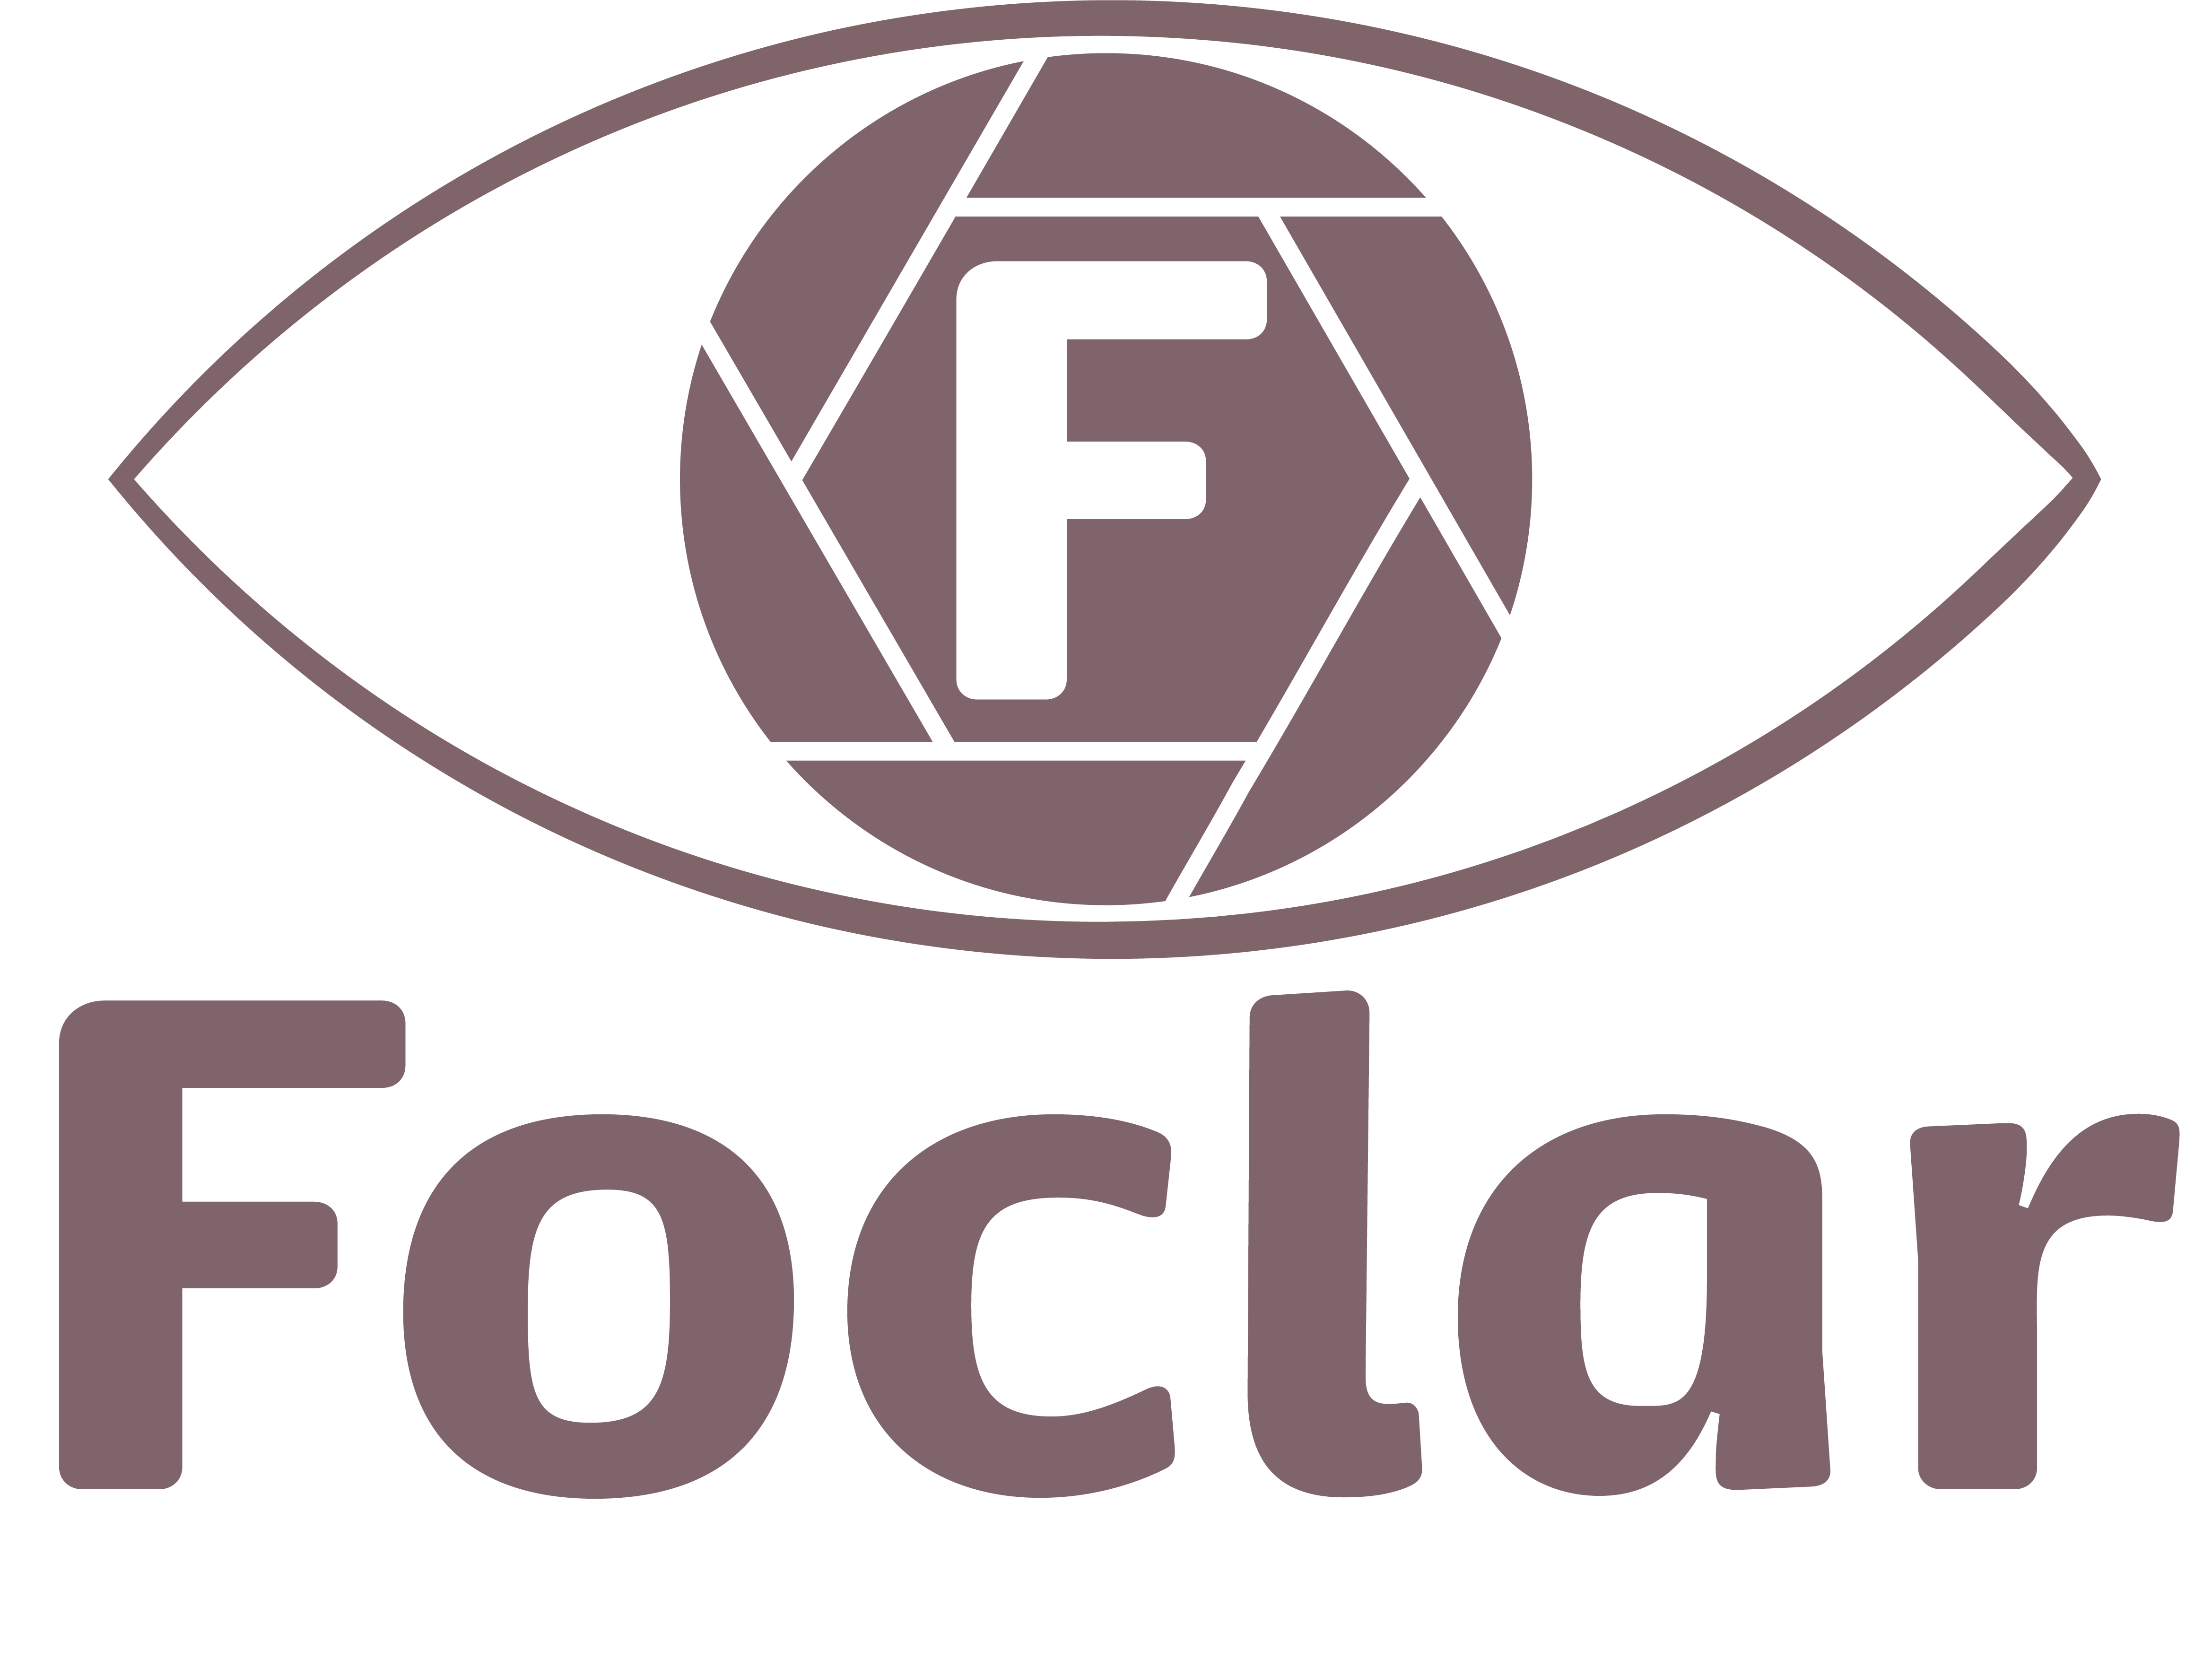 Foclar logo – text below